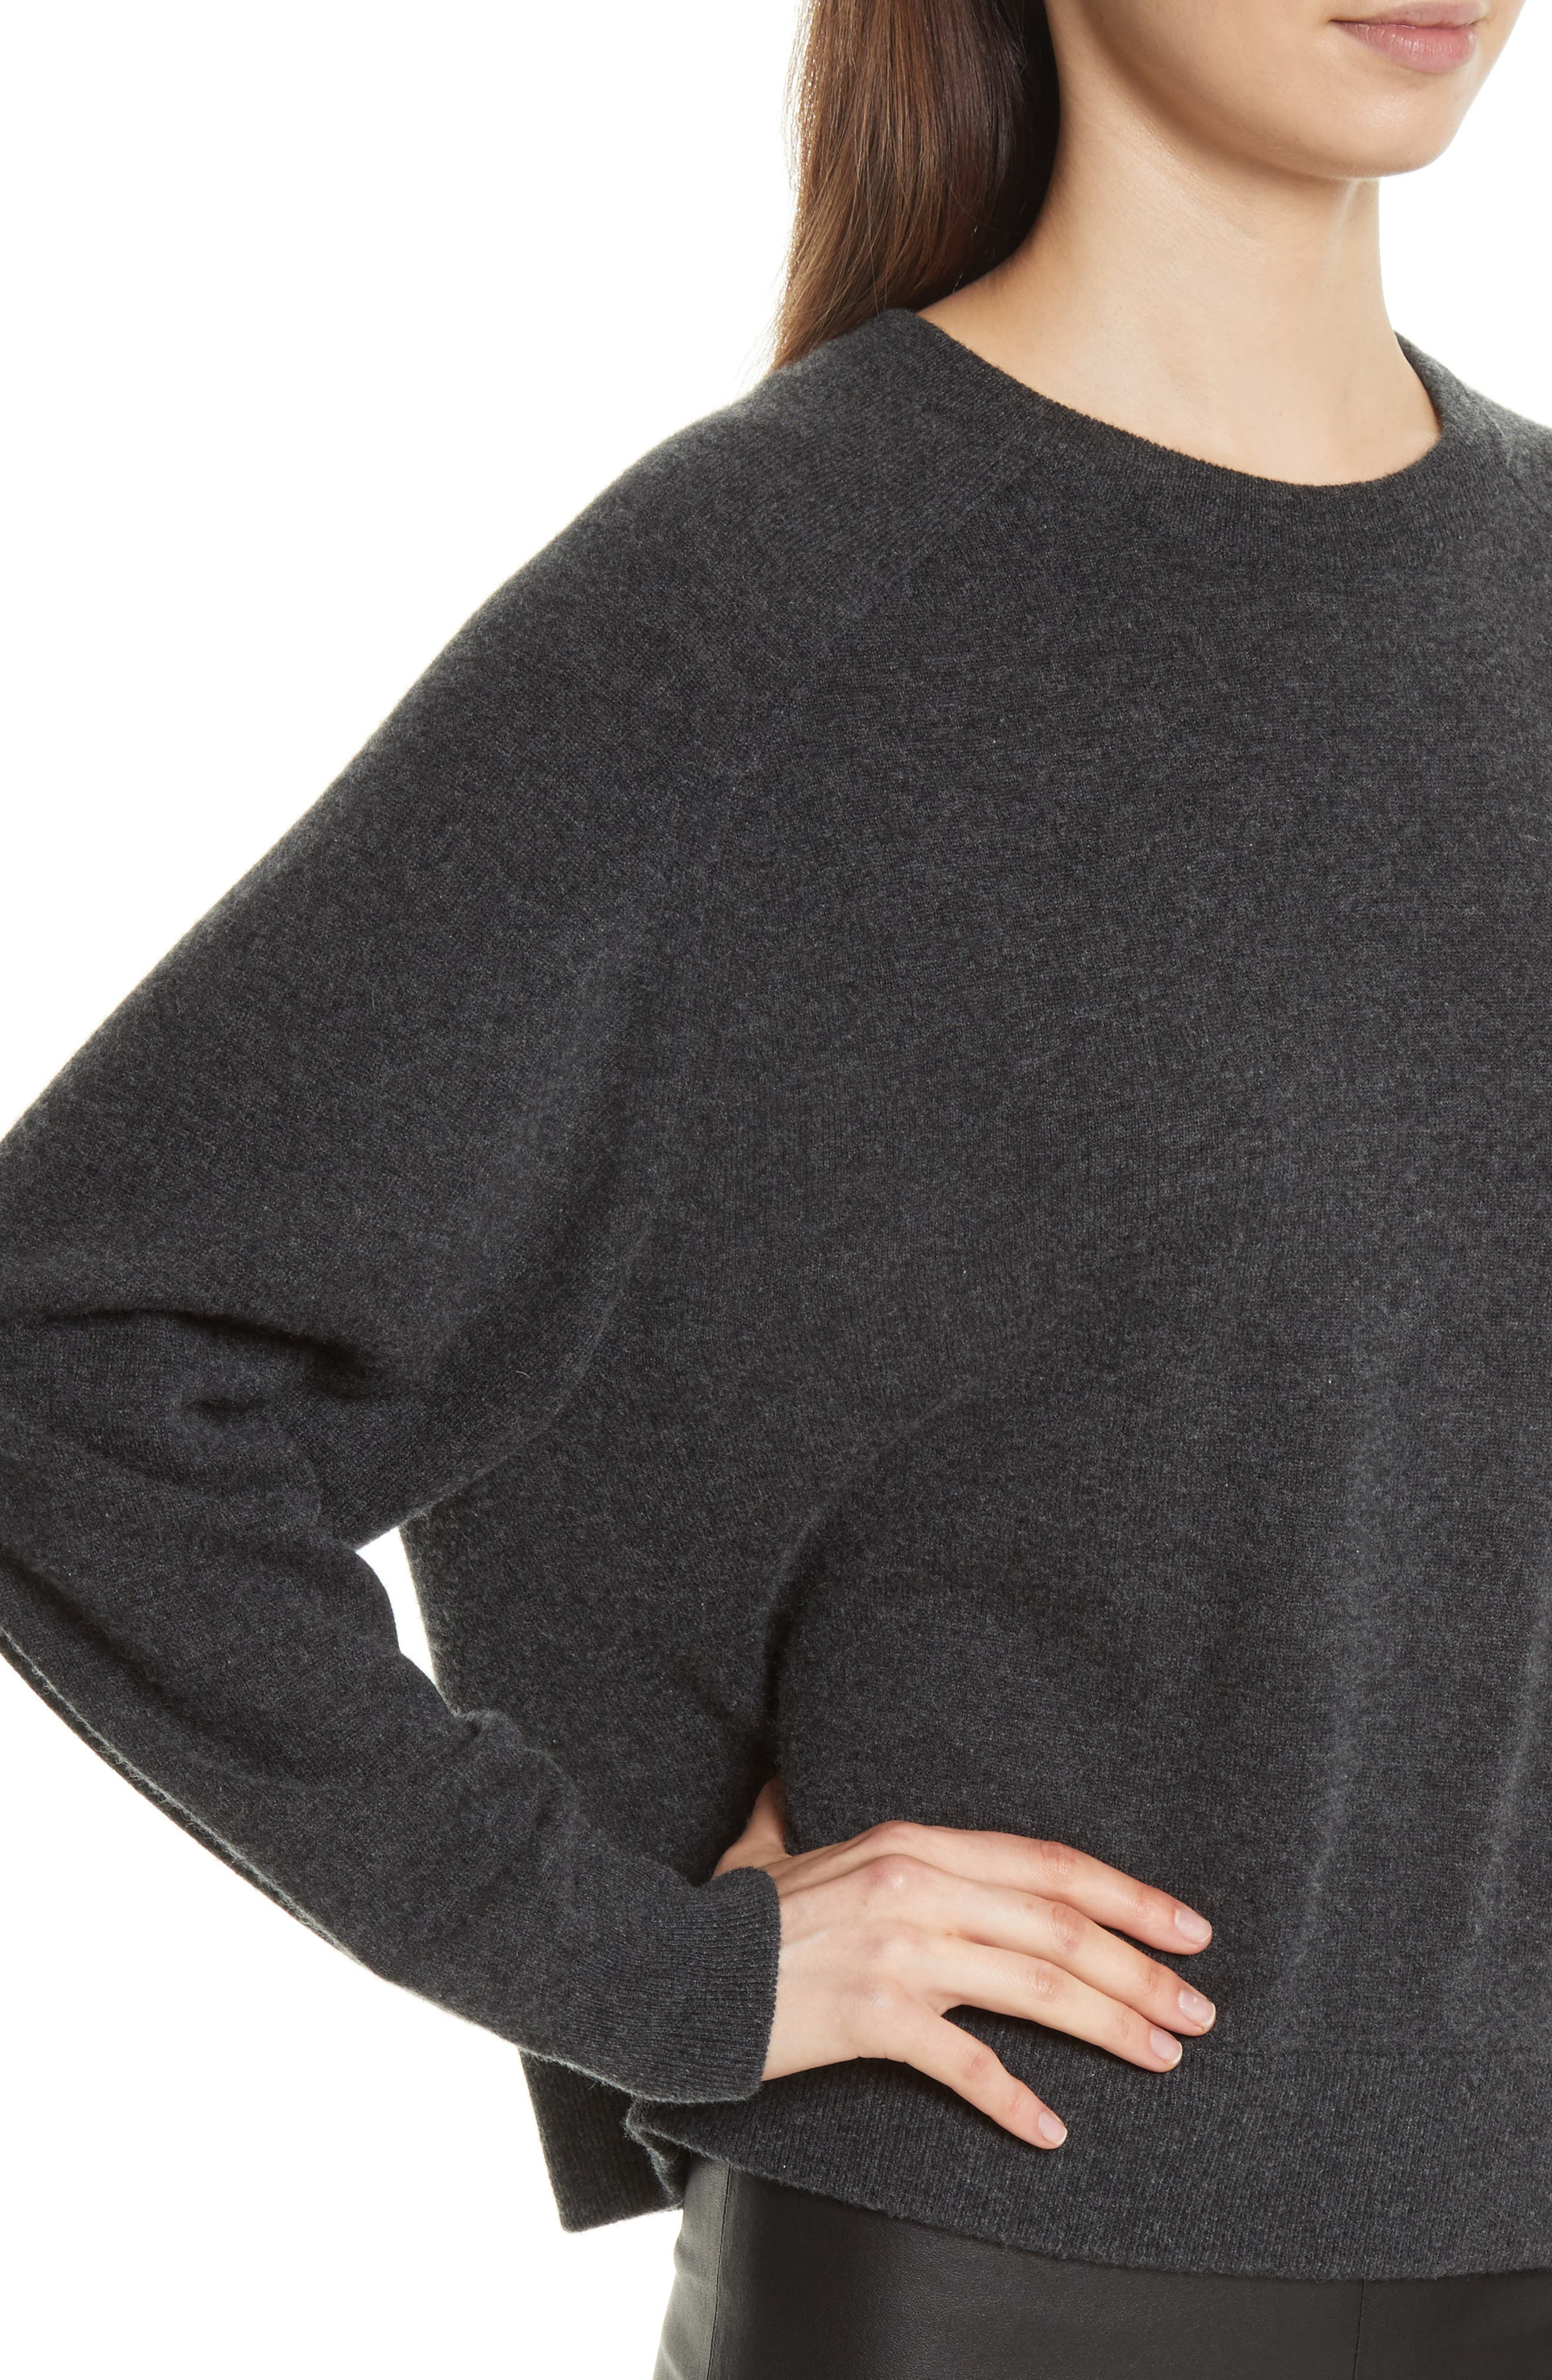 Saddle Sleeve Cashmere Sweater,                             Alternate thumbnail 4, color,                             Carbon